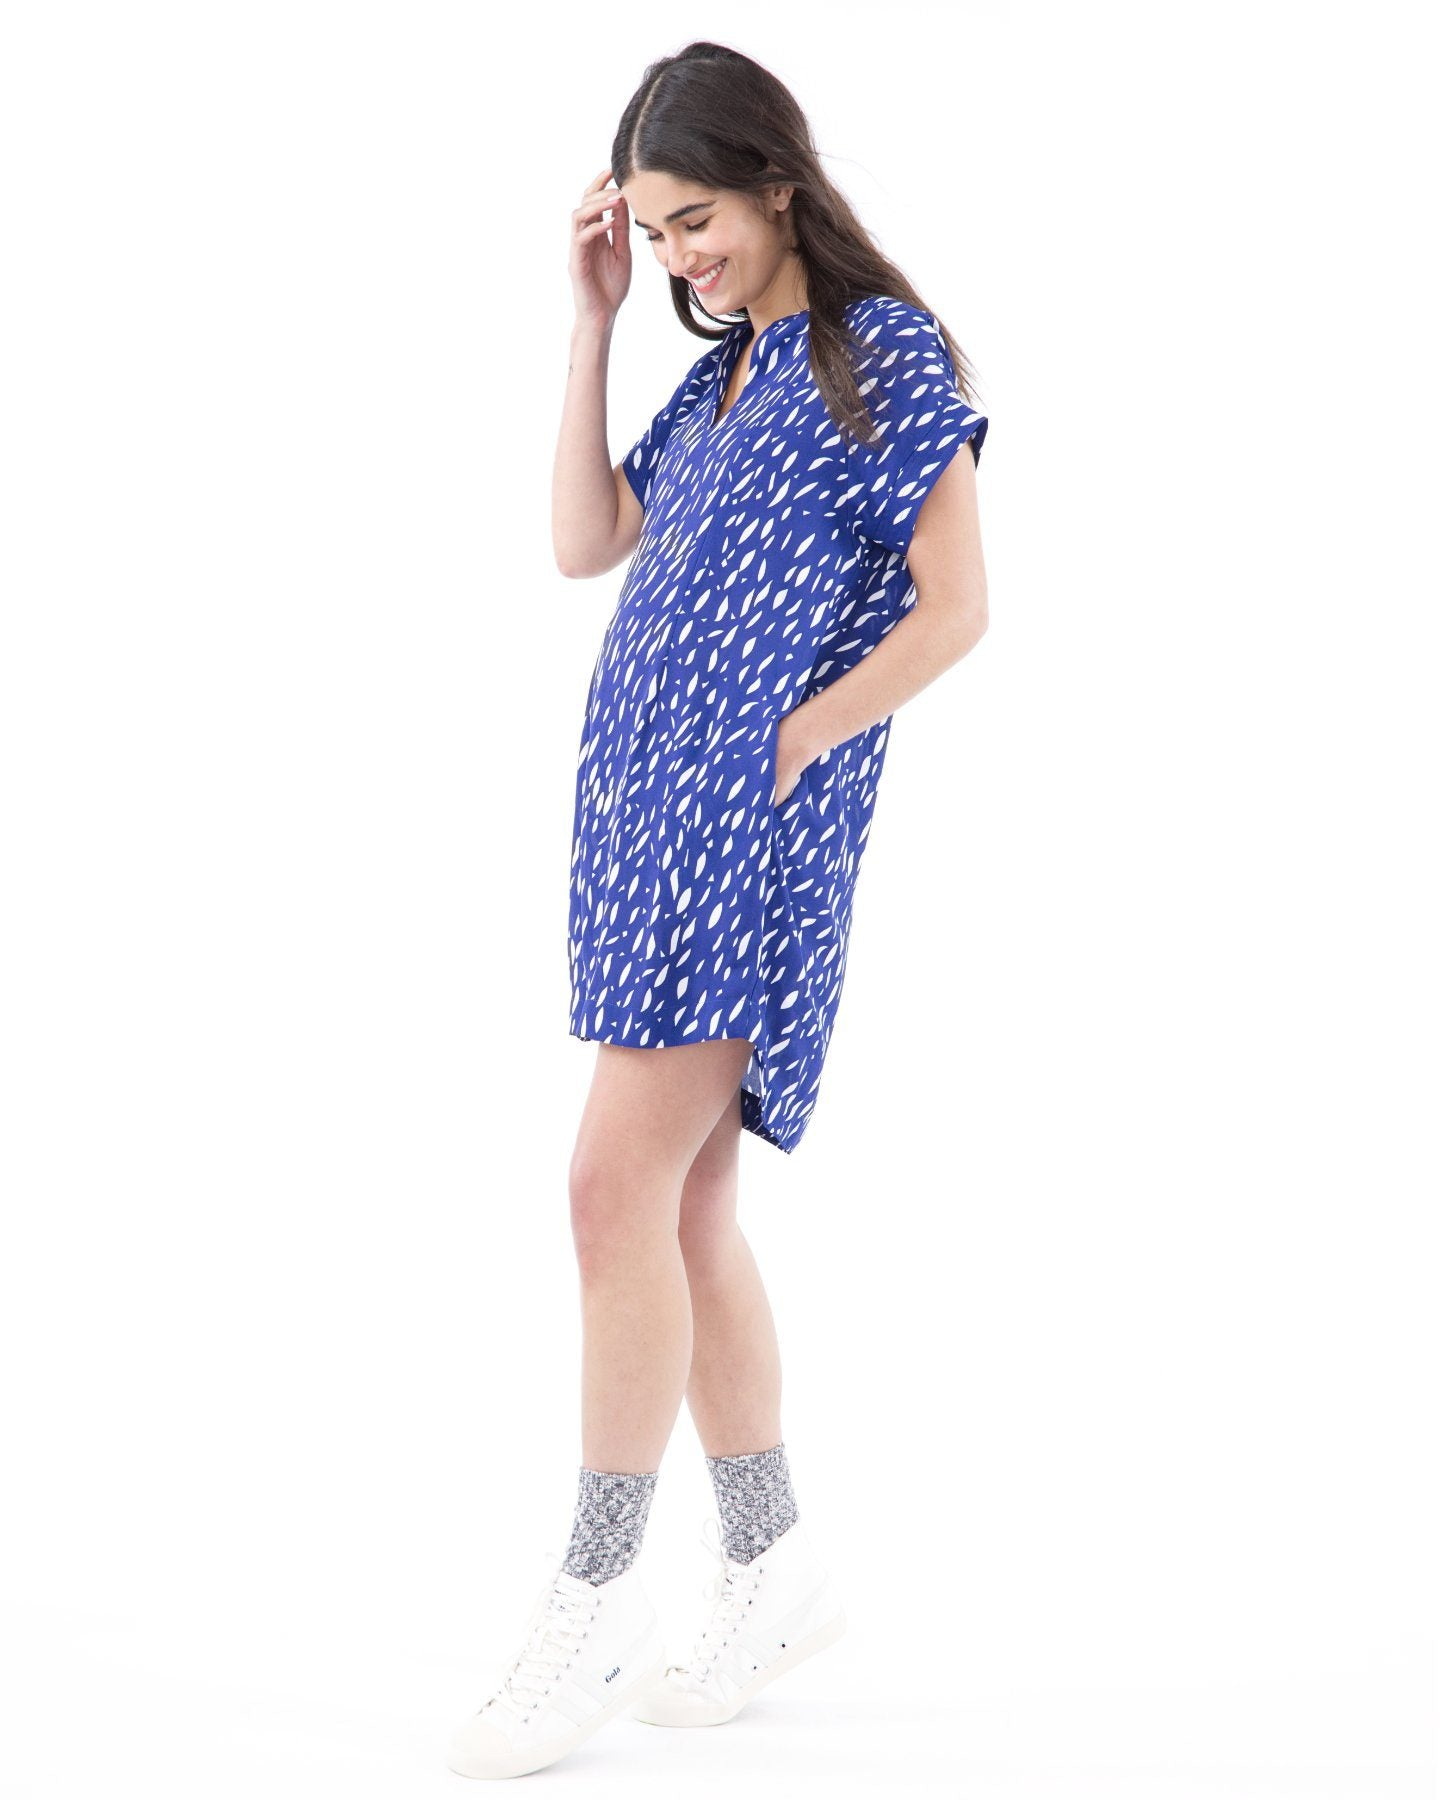 51ec78a30ee12 ... CYBELLE - Blue Raindrop cap sleeve nursing and maternity dress short  sleeve dress Loyal Hana